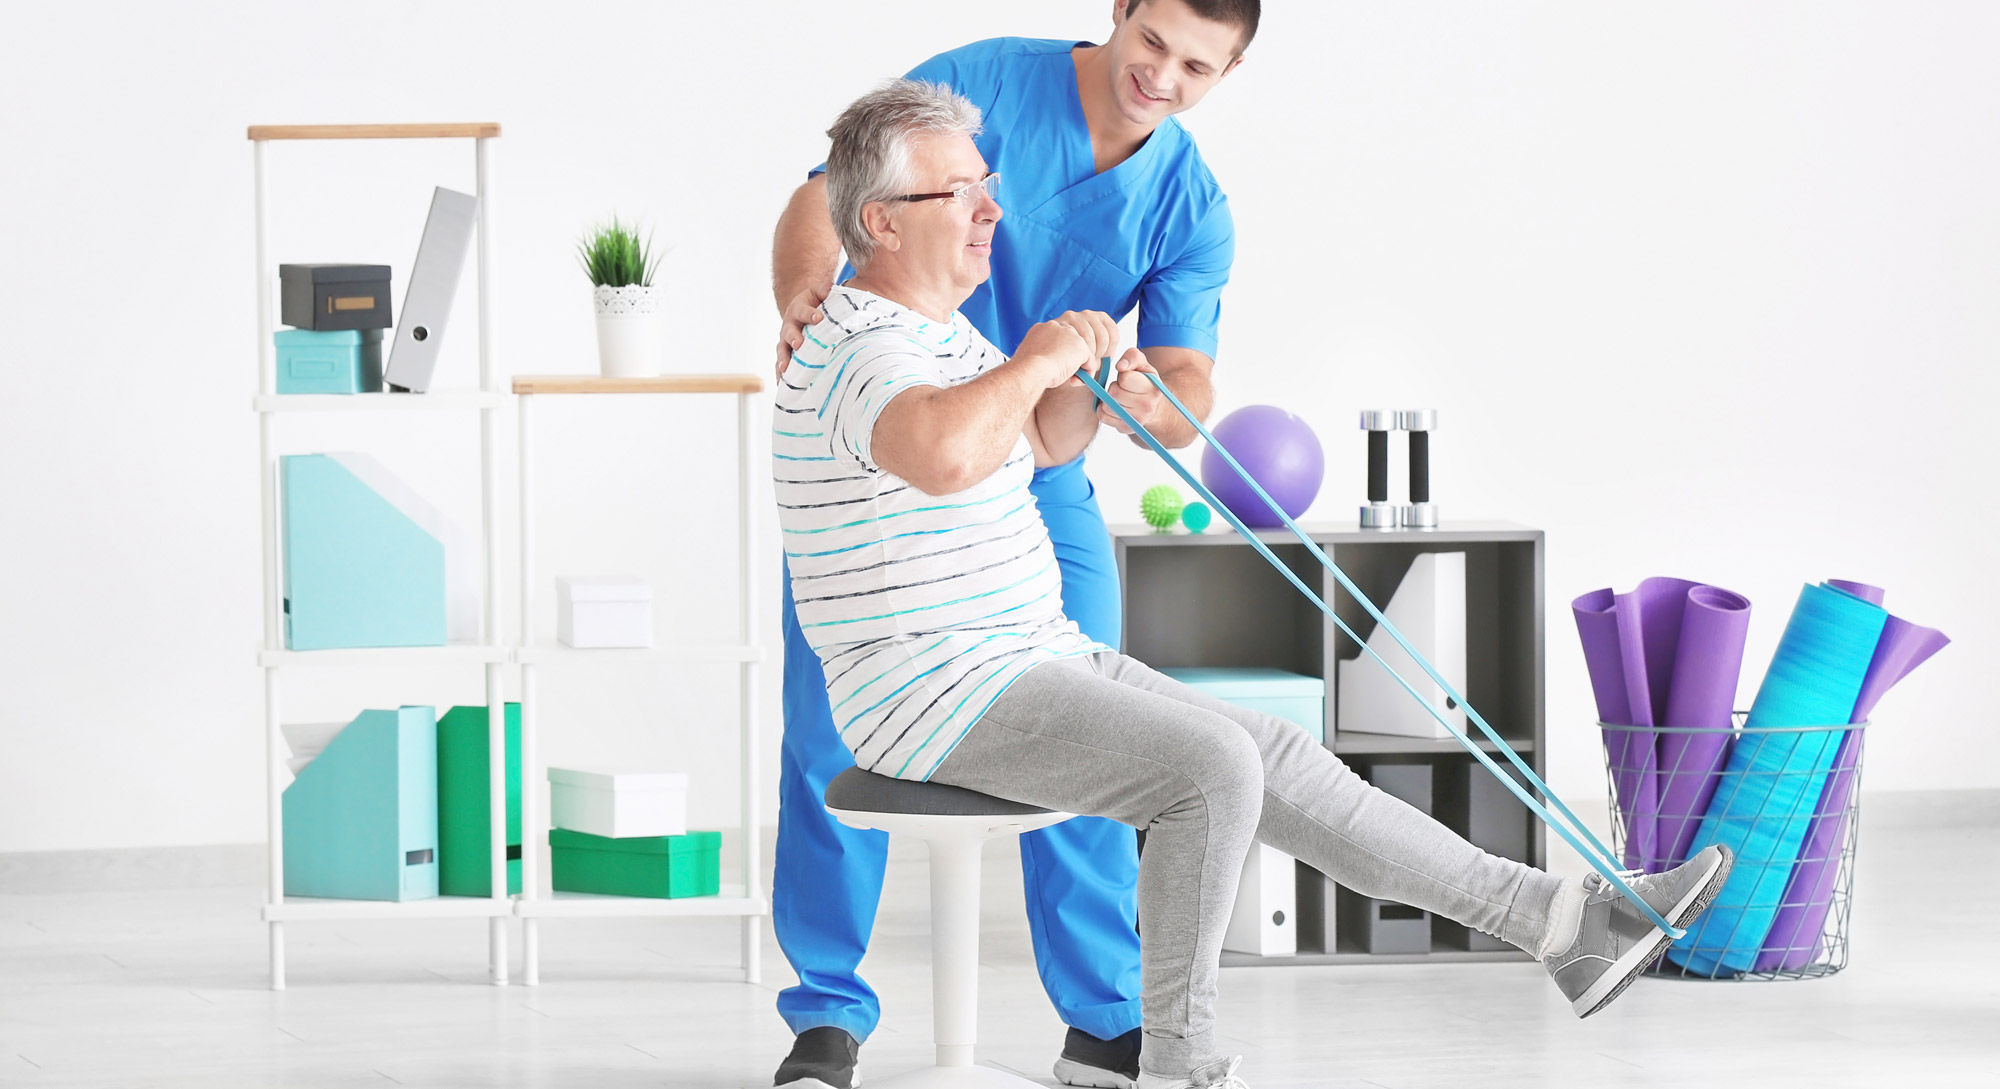 Rehabilitation & Ergonomic Advice at our clinic is as easy as it gets...